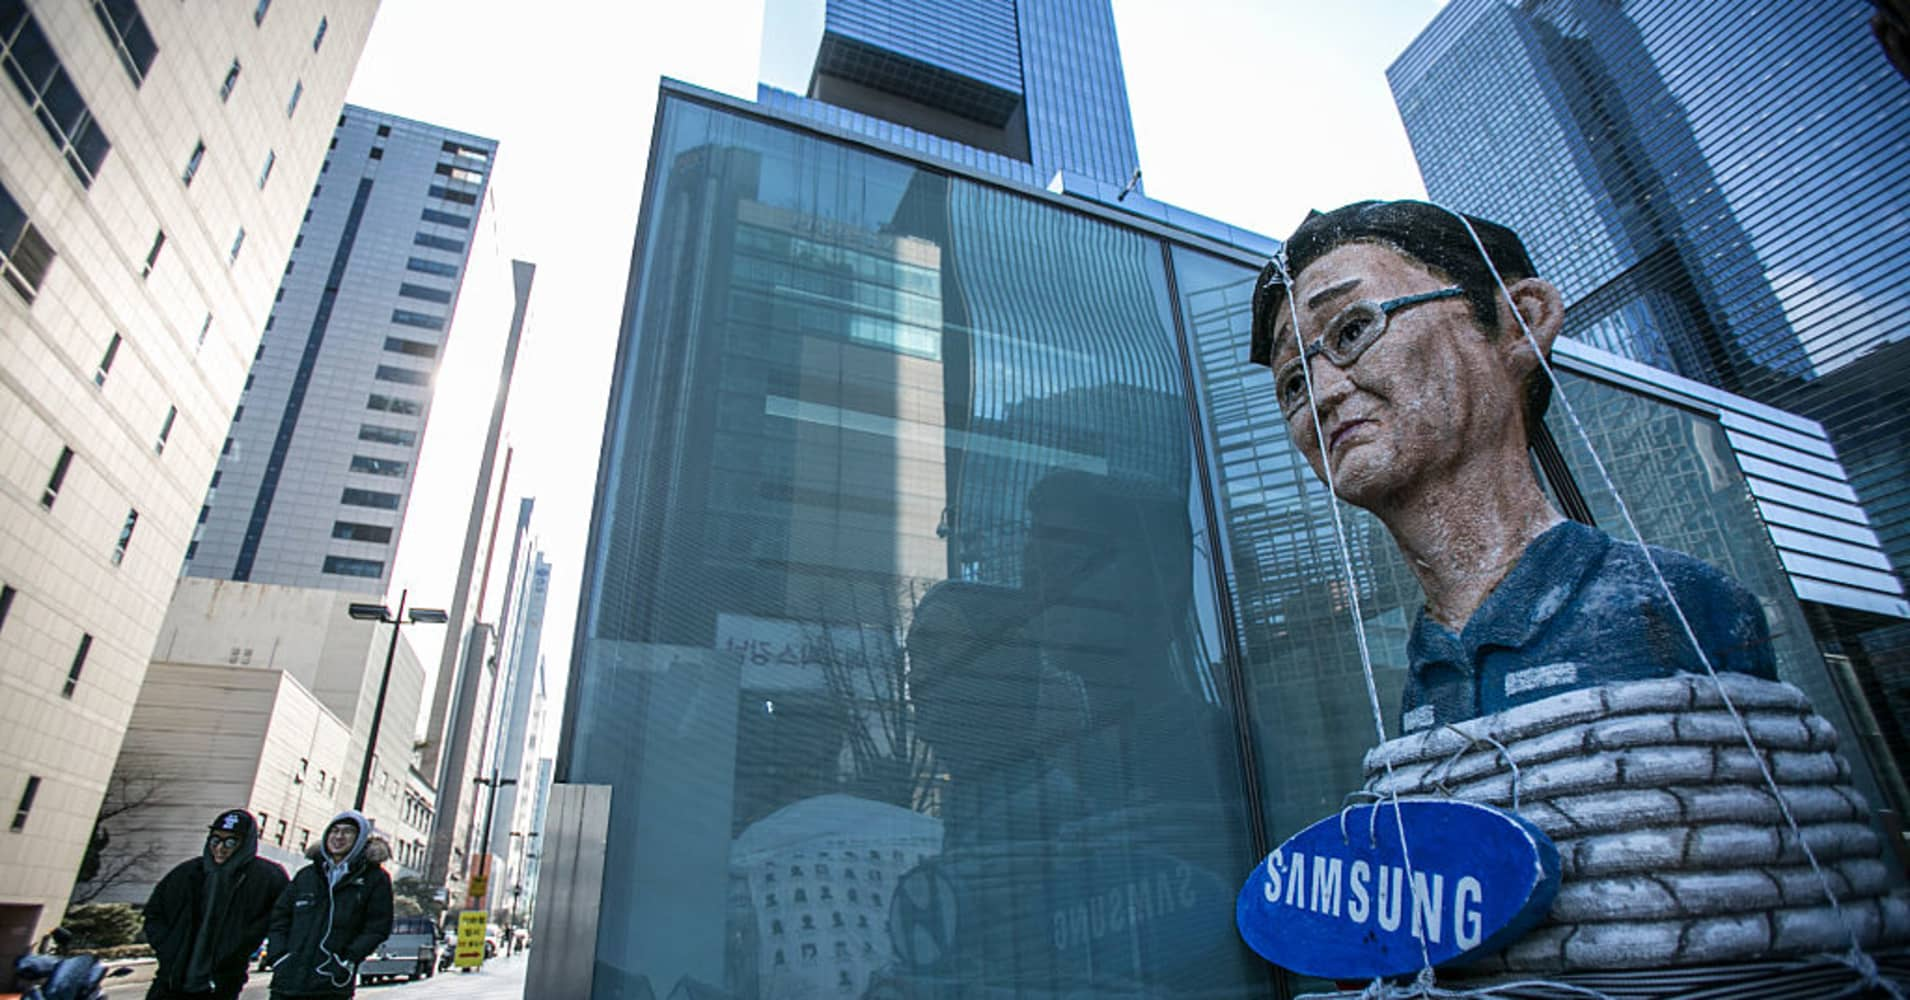 South Korea prosecutor to seek arrest warrant for Samsung Group leader JY Lee